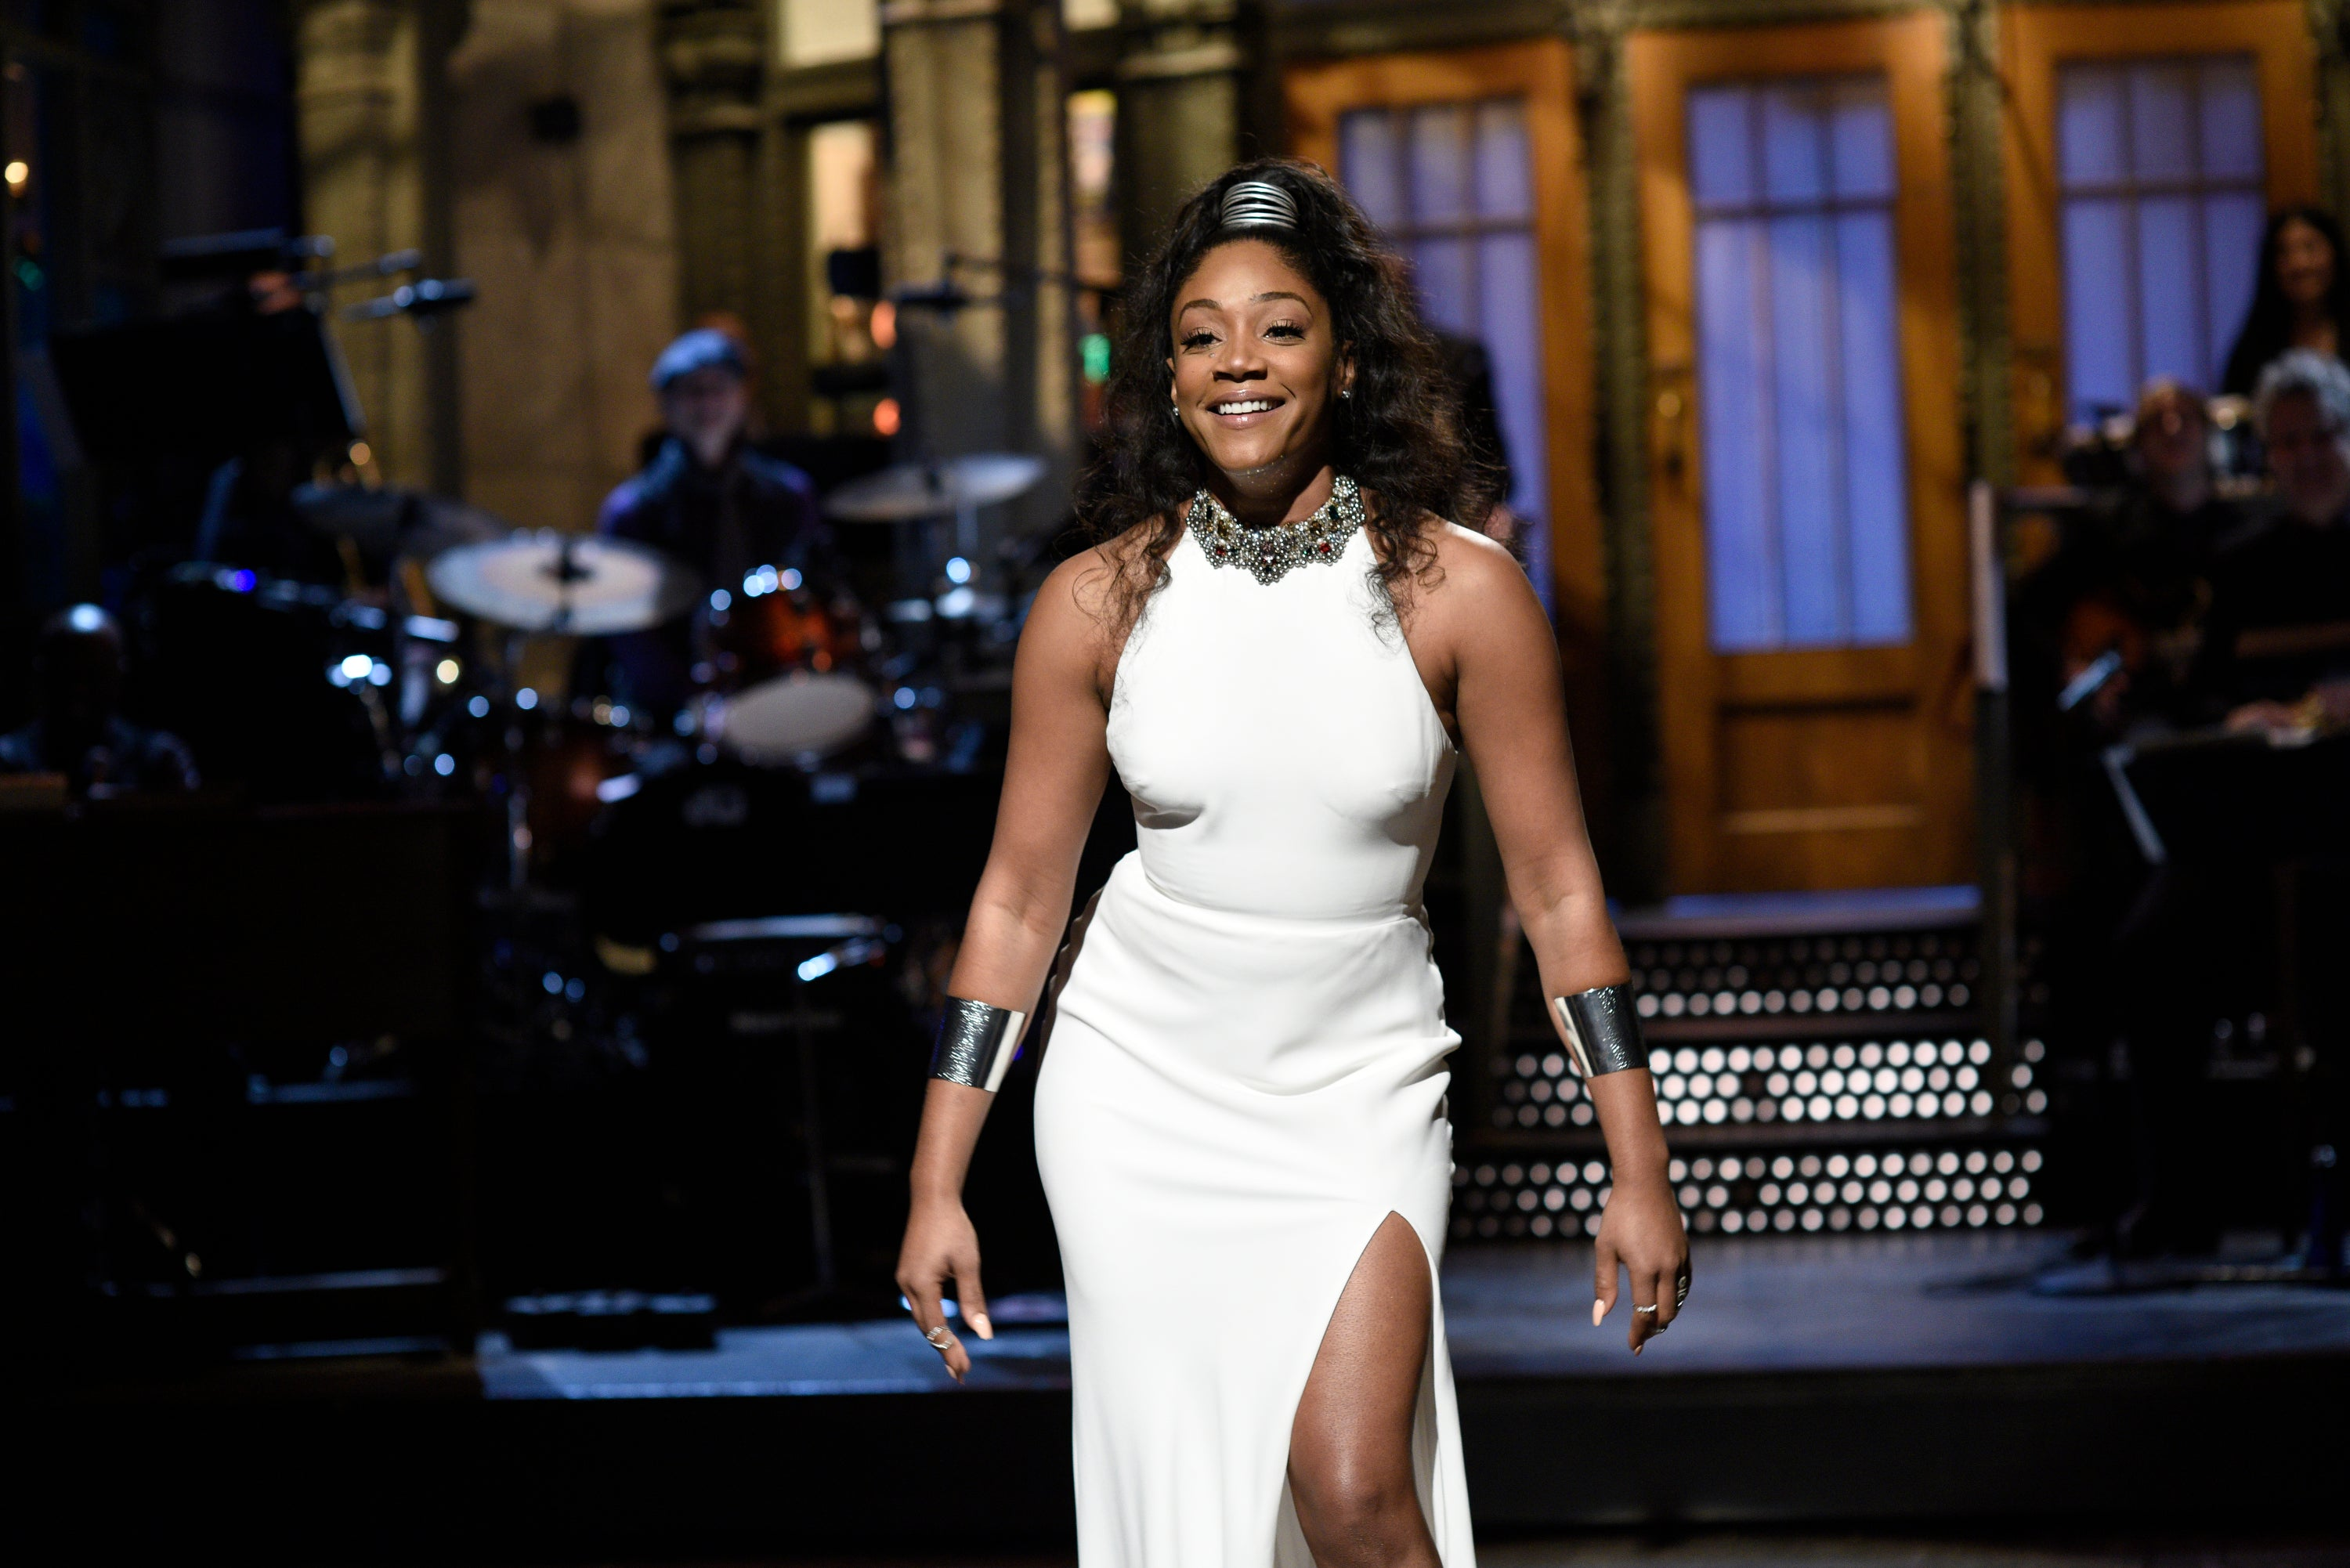 Tiffany Haddish Makes History With SNL Debut - Essence